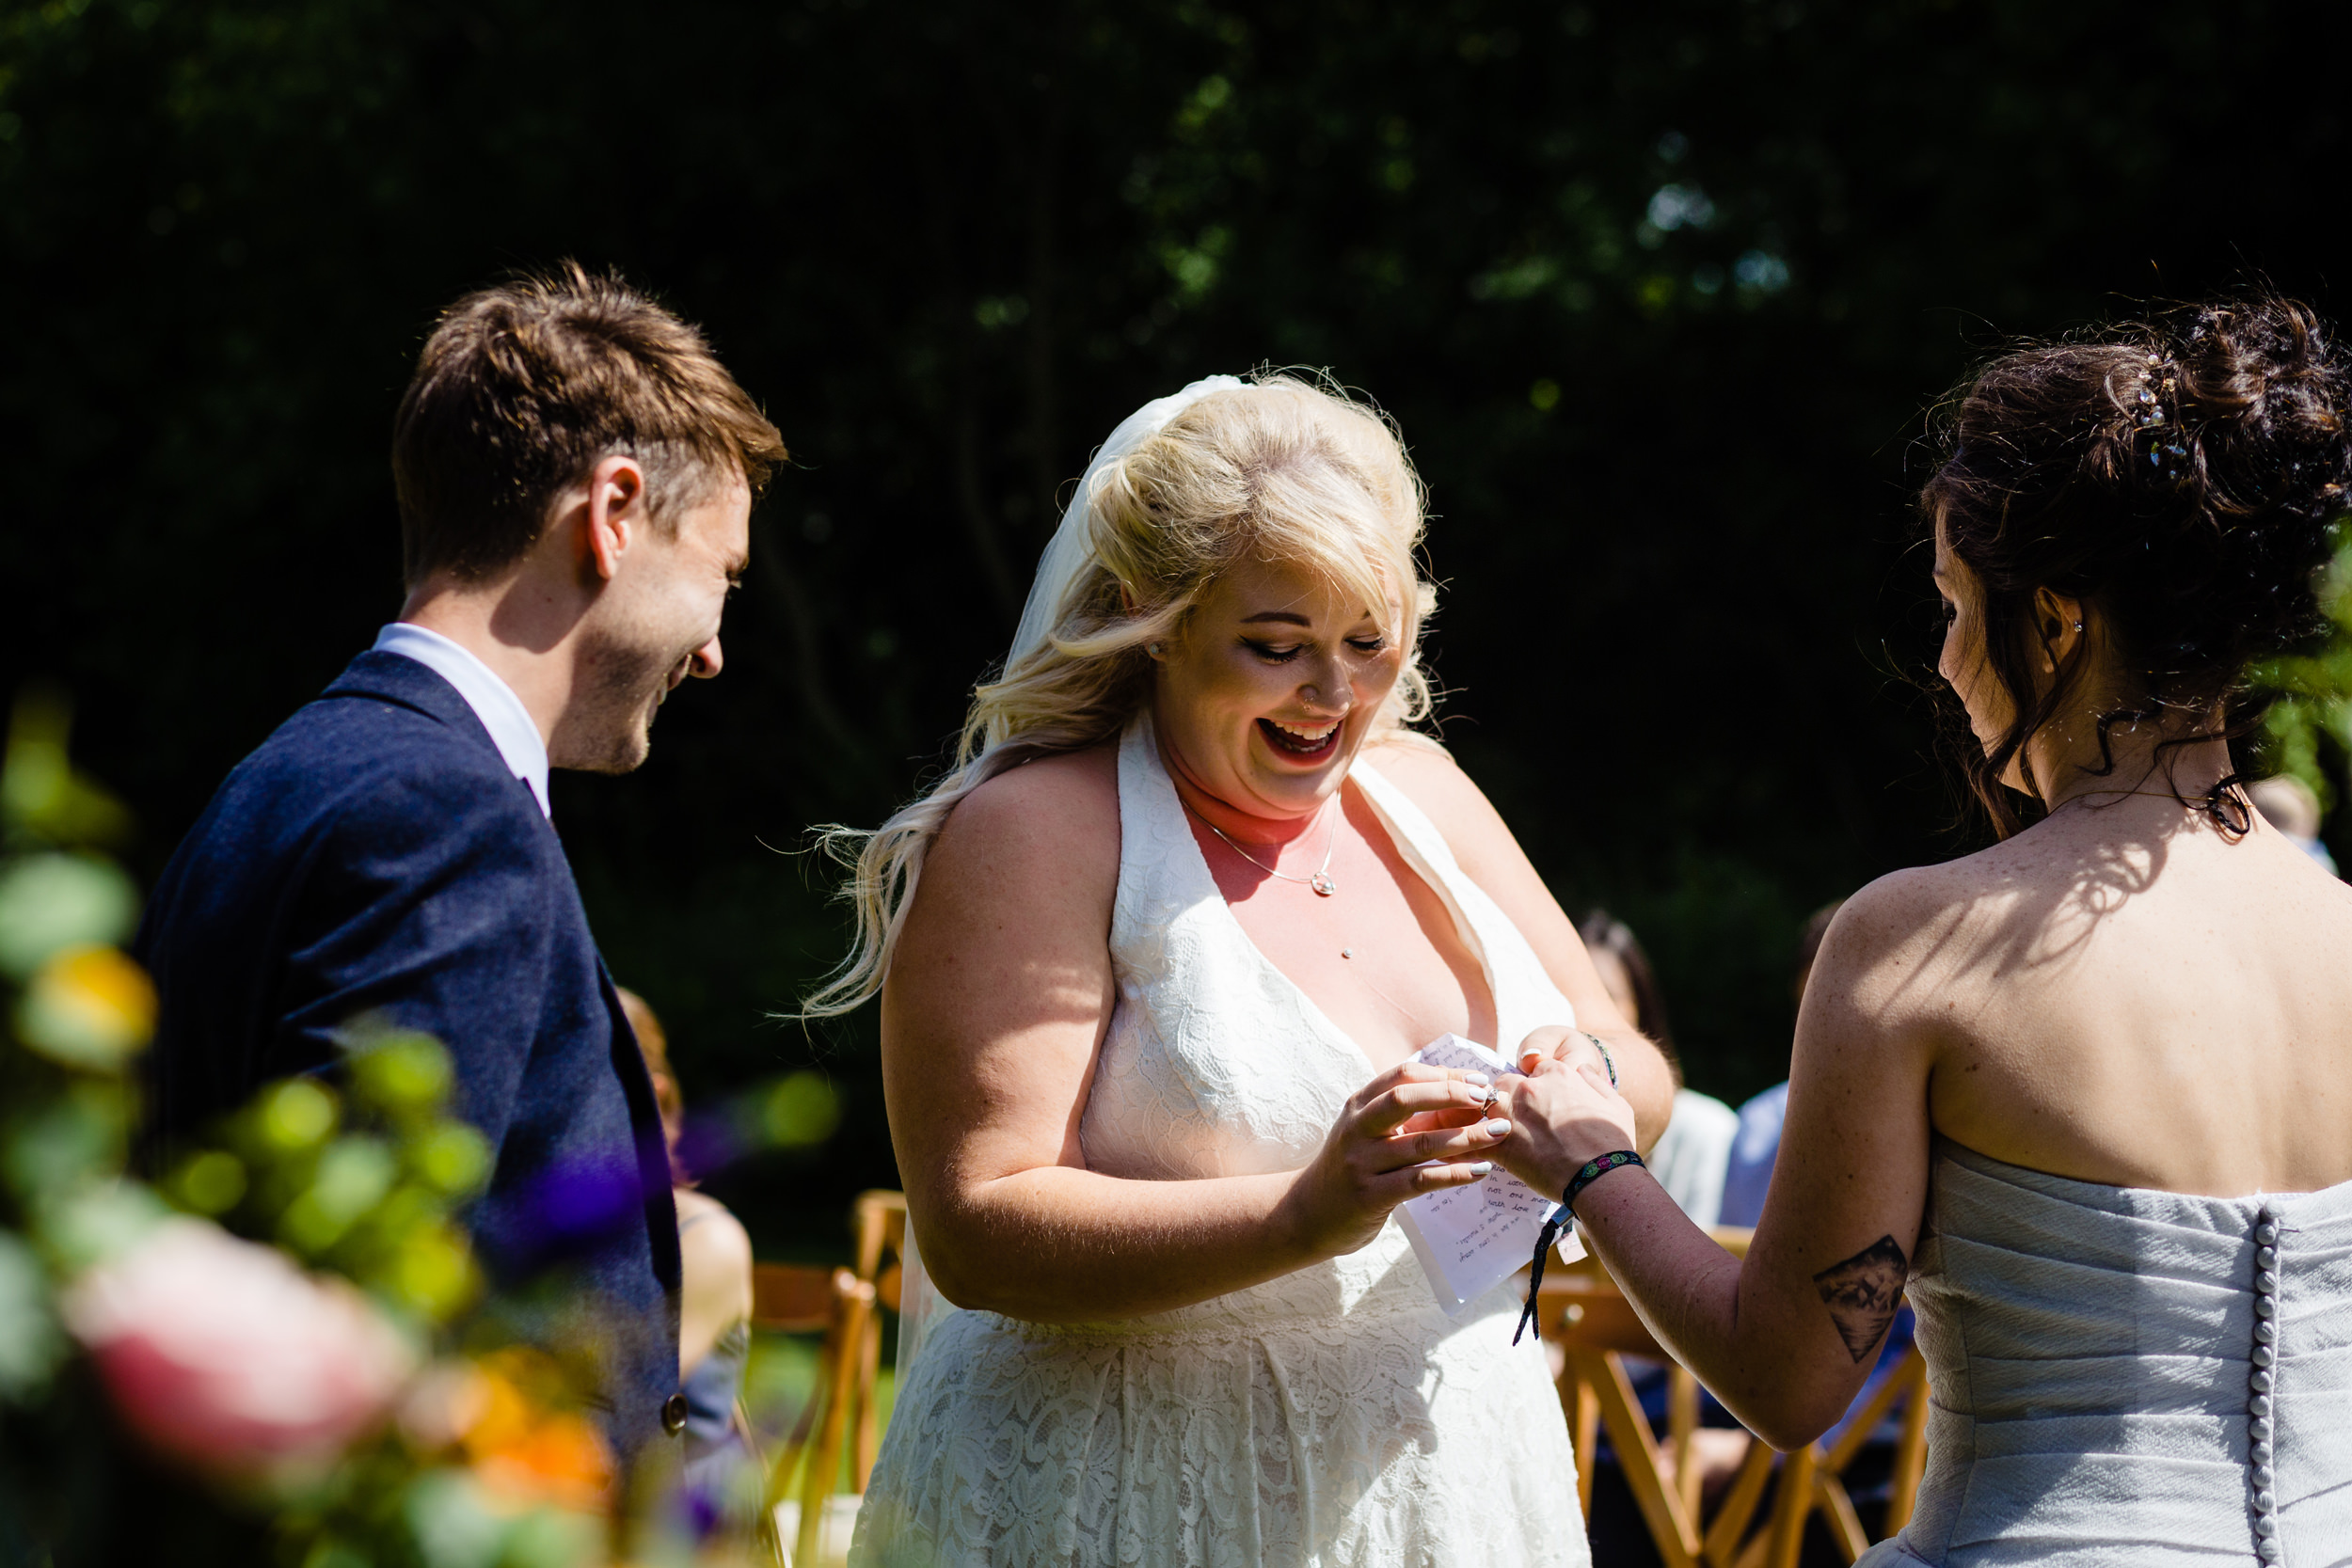 brides exchanging rings. plough inn, hathersage wedding photography by emma and rich.